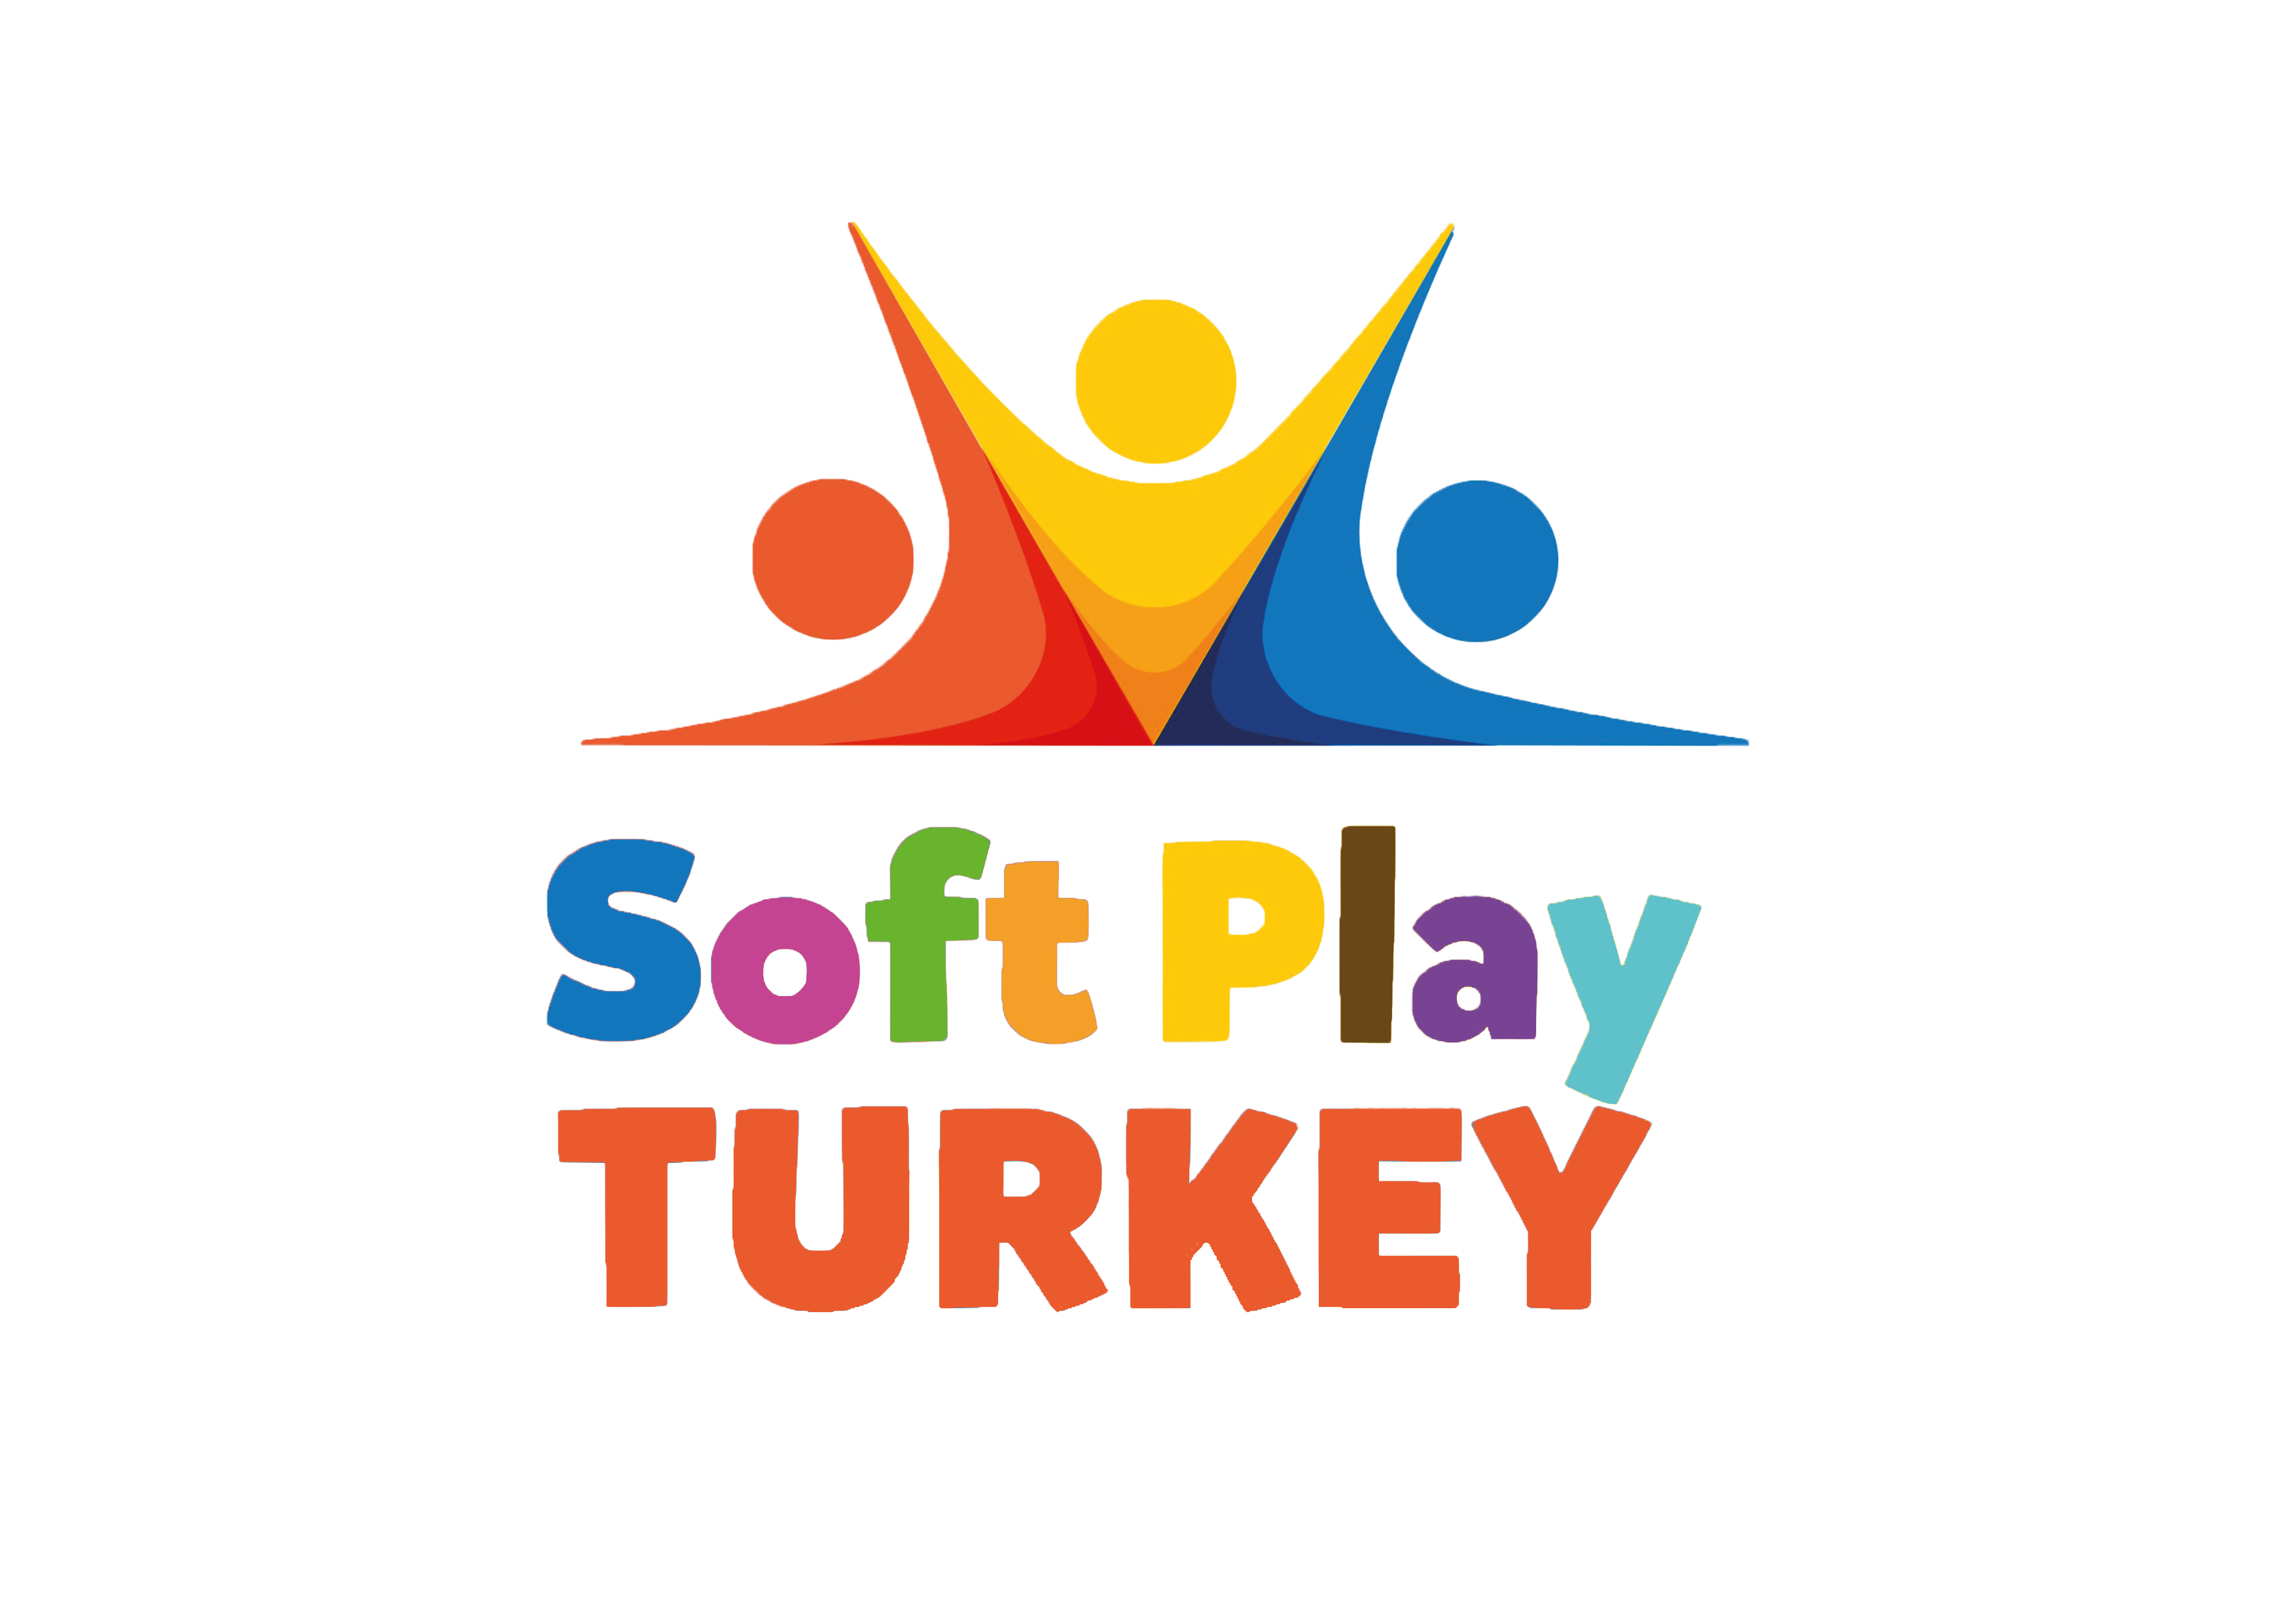 Soft Play Turkey | Top Havuzu İmalatı | Trambolin İmalatı | Soft Play İmalatı - Trambolin, Top Havuzu